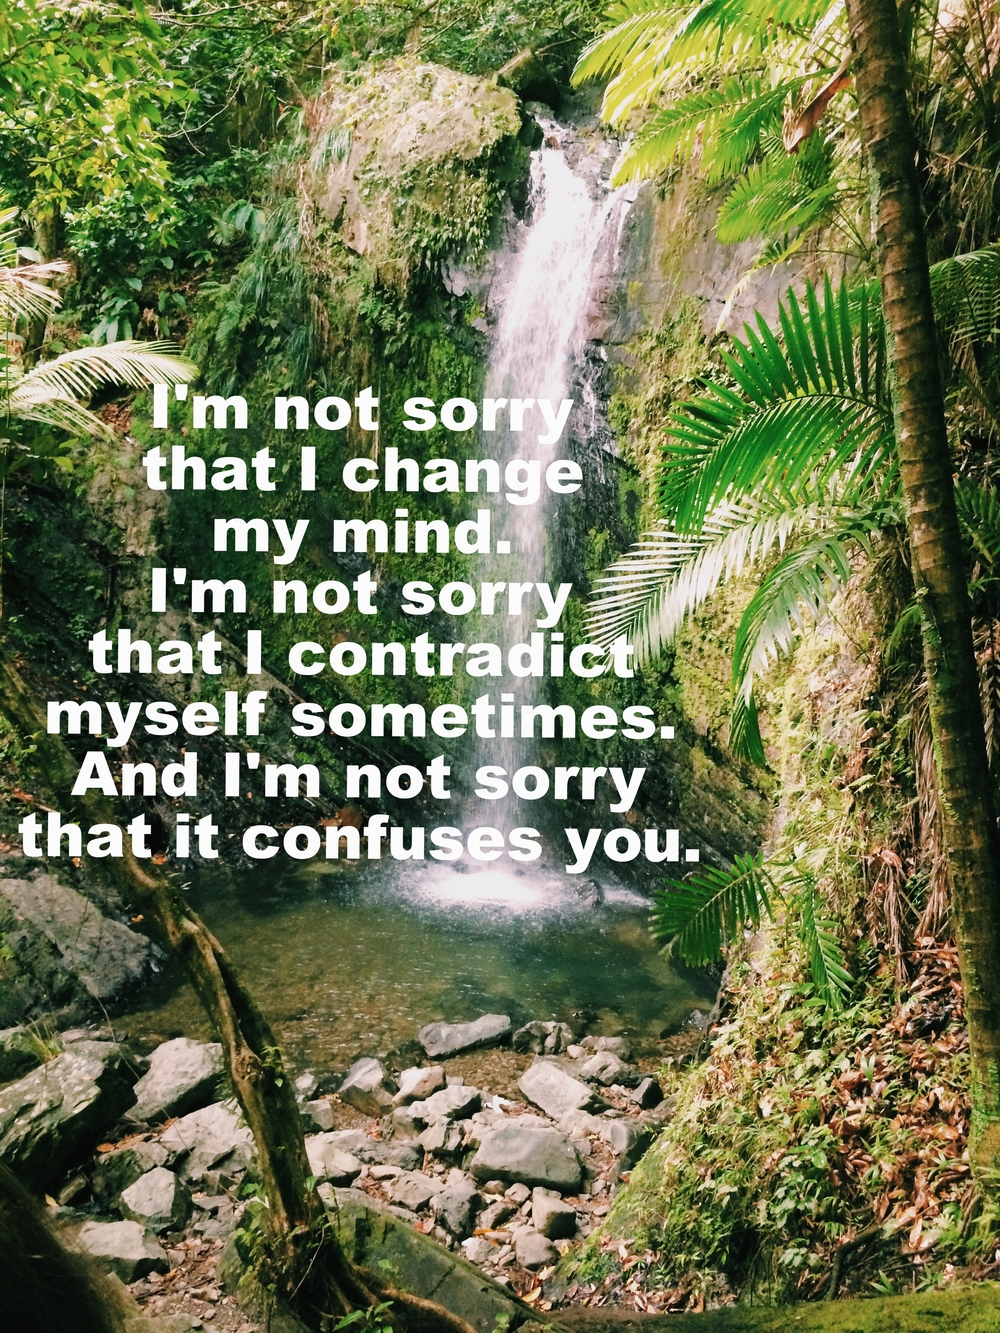 "Anonymous March 29 2016 Image of a waterfall with lush trees, moss, and plants of many shades of green surrounding it. Water falls into a rocky pool at the bottom. ""I'm not sorry that I change my mind. I'm not sorry that I contradict myself sometimes. And I'm not sorry that it confuses you"" is overlaid."